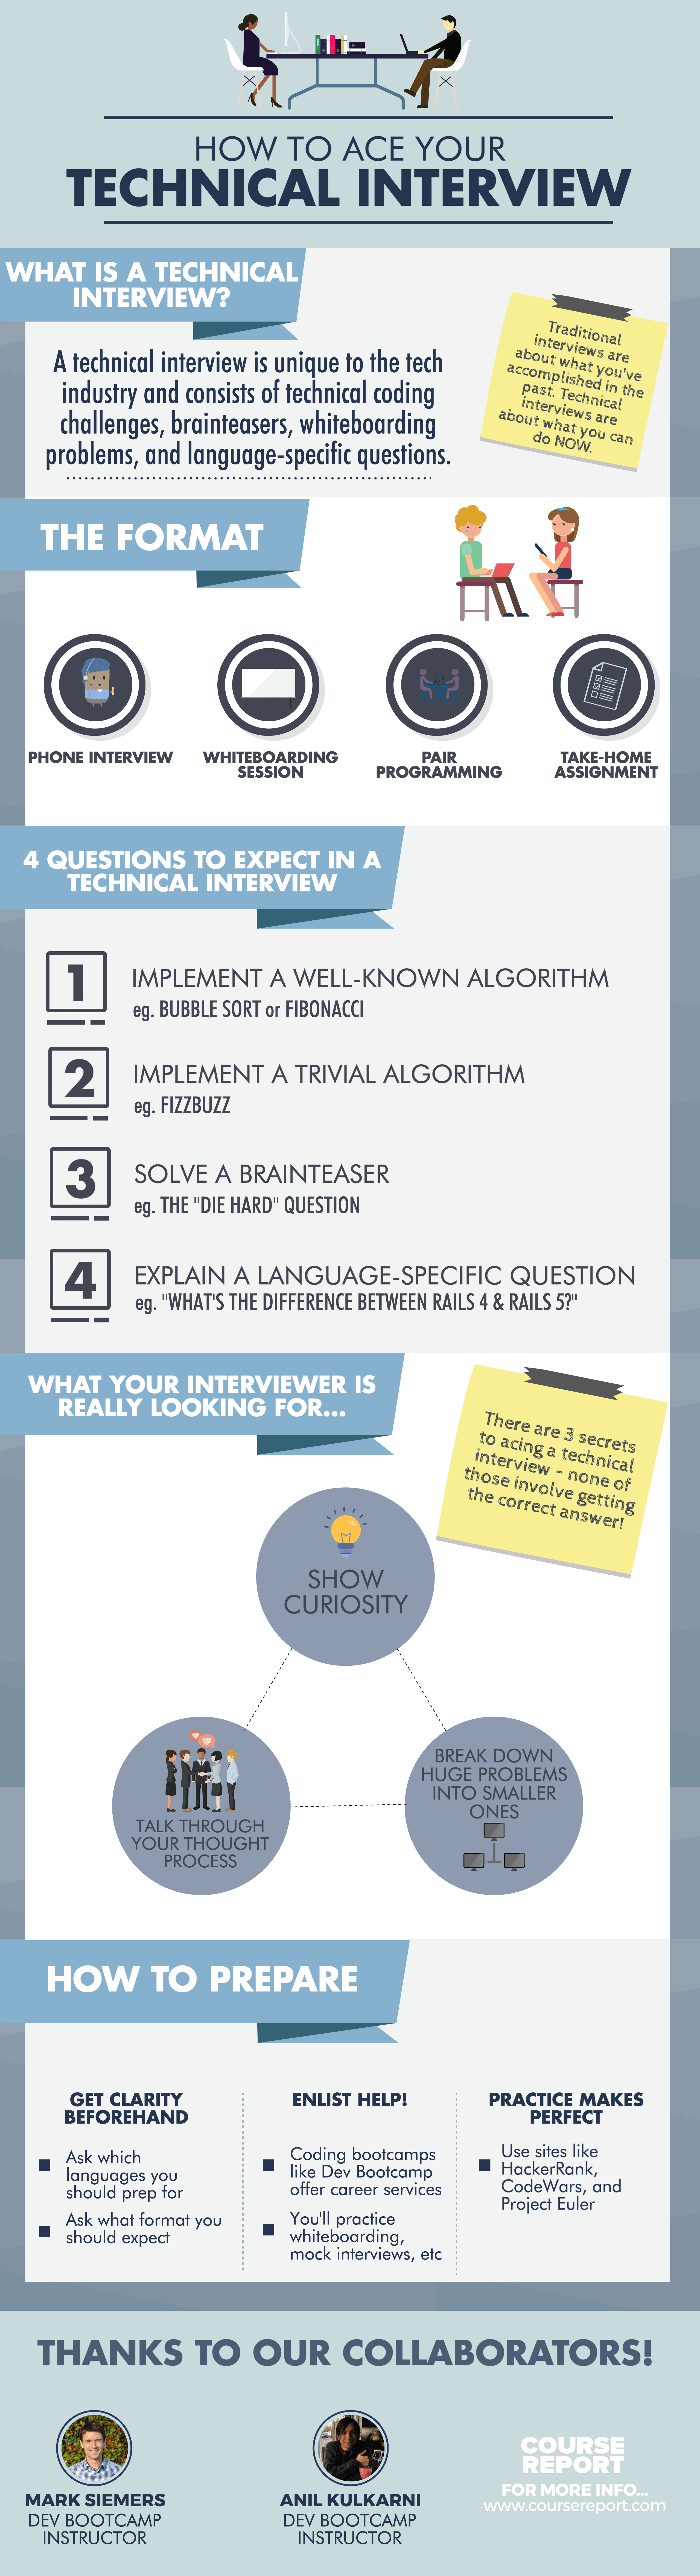 How to pass a technical interview for a tech job infographic